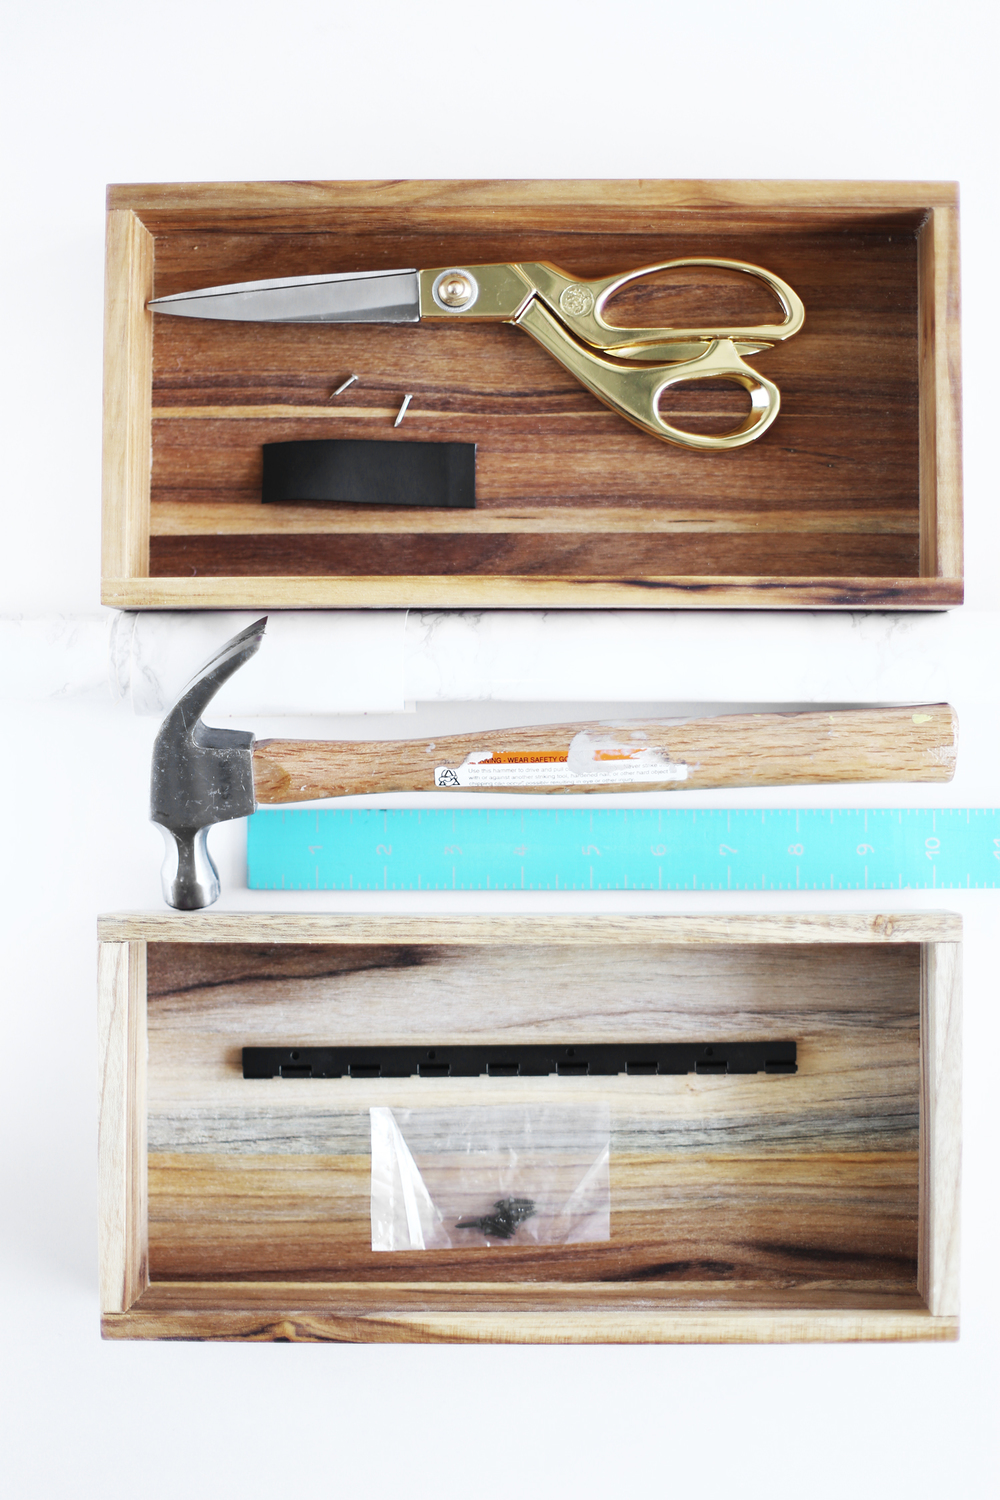 DIY decorative box supplies